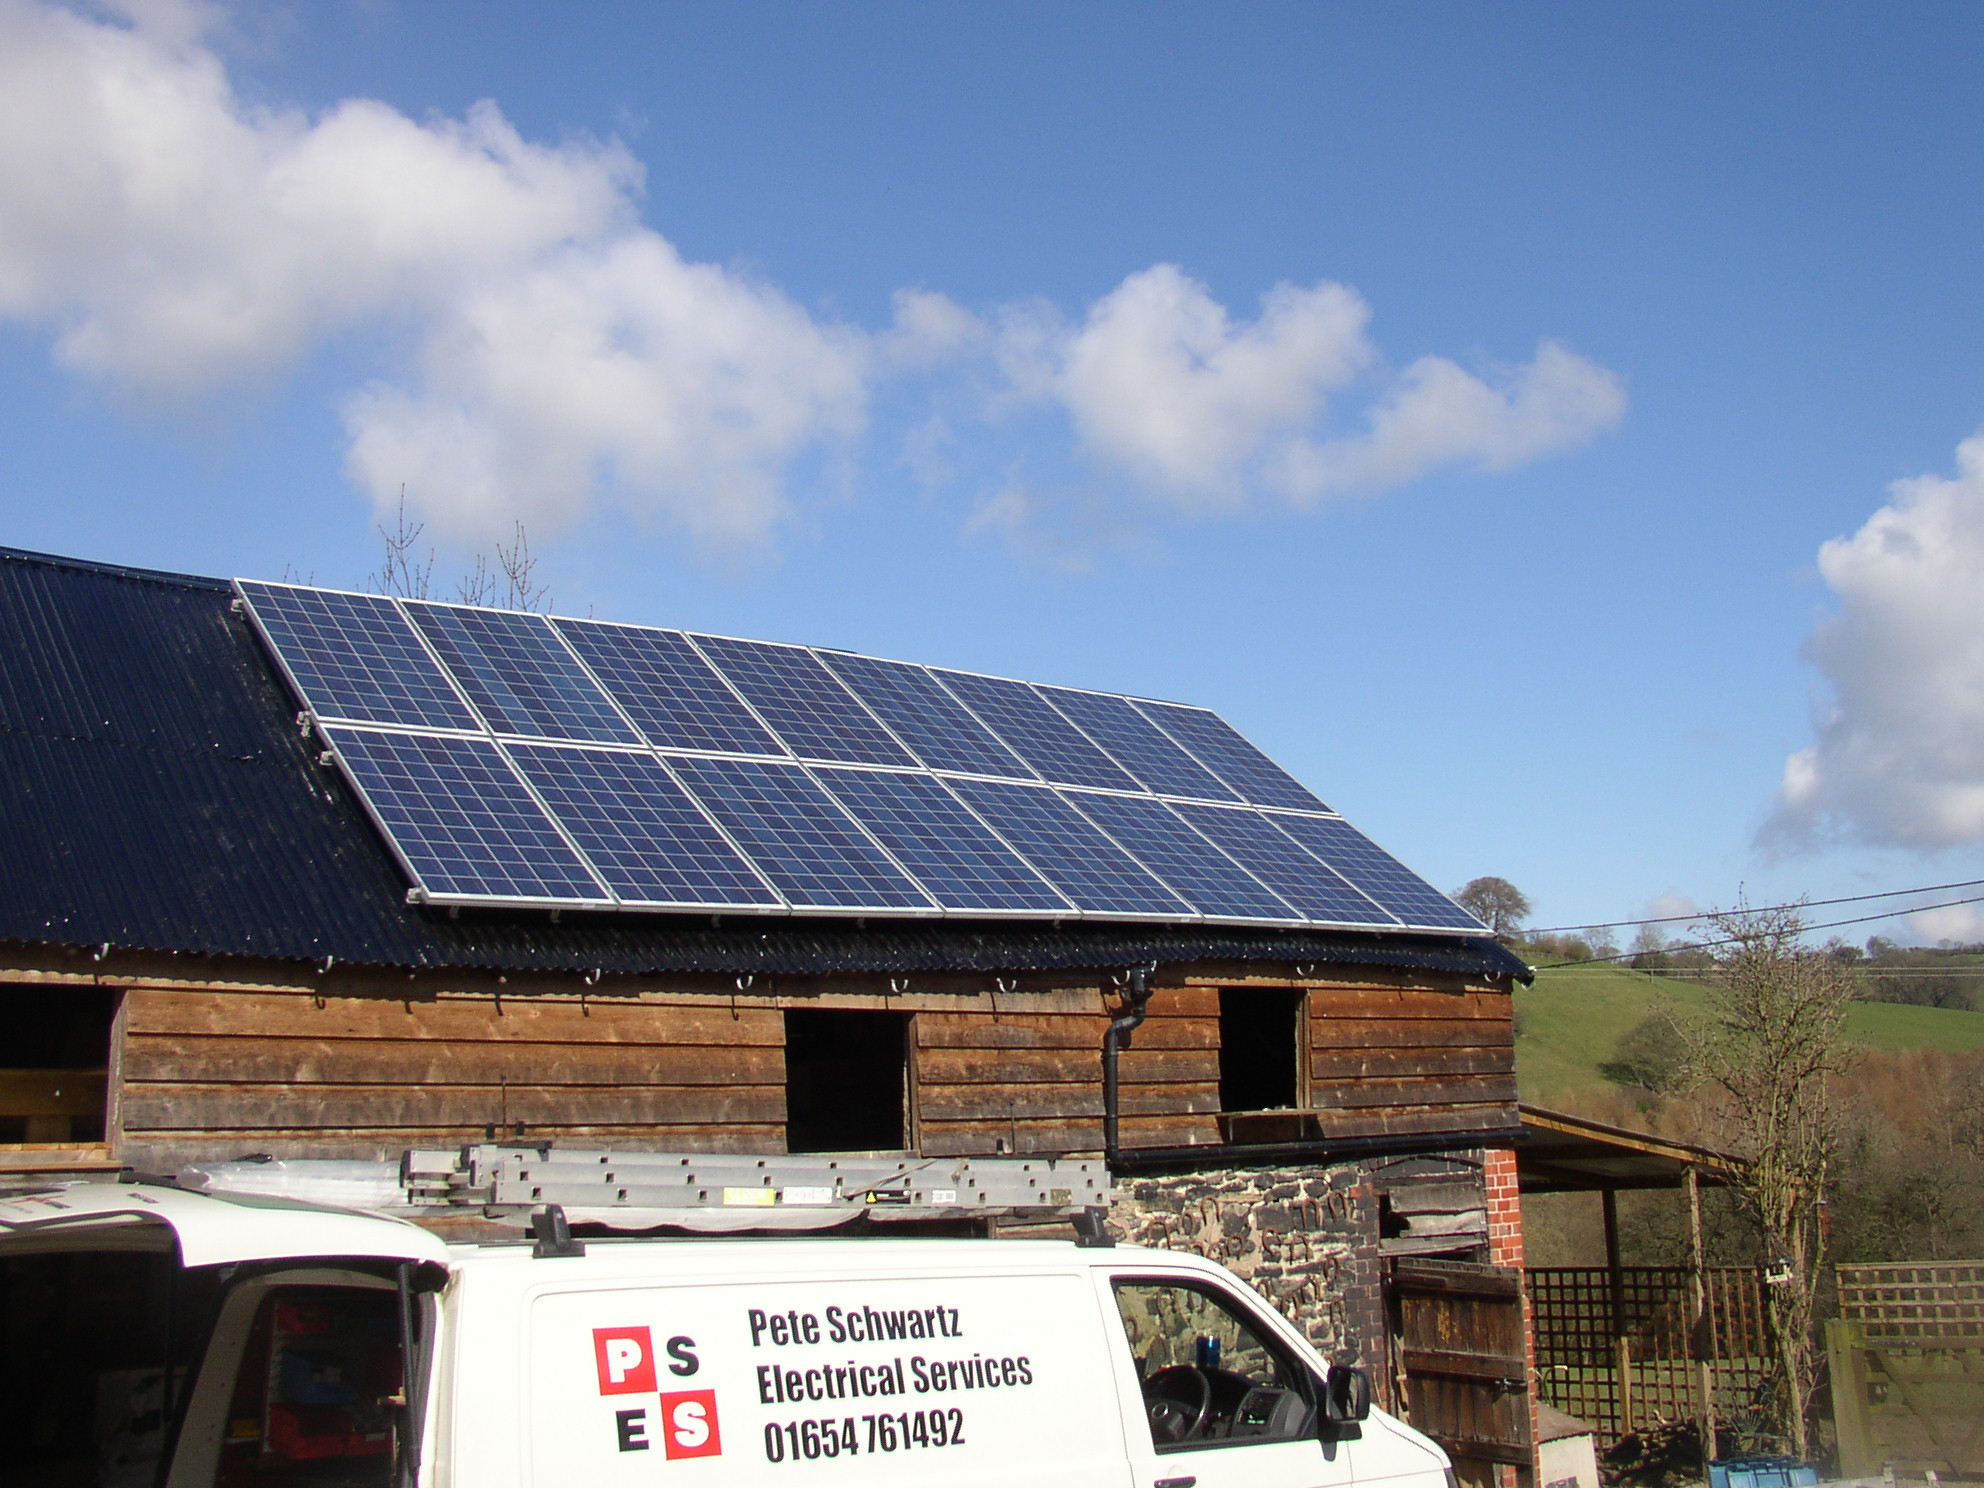 4 kW array in Shropshire